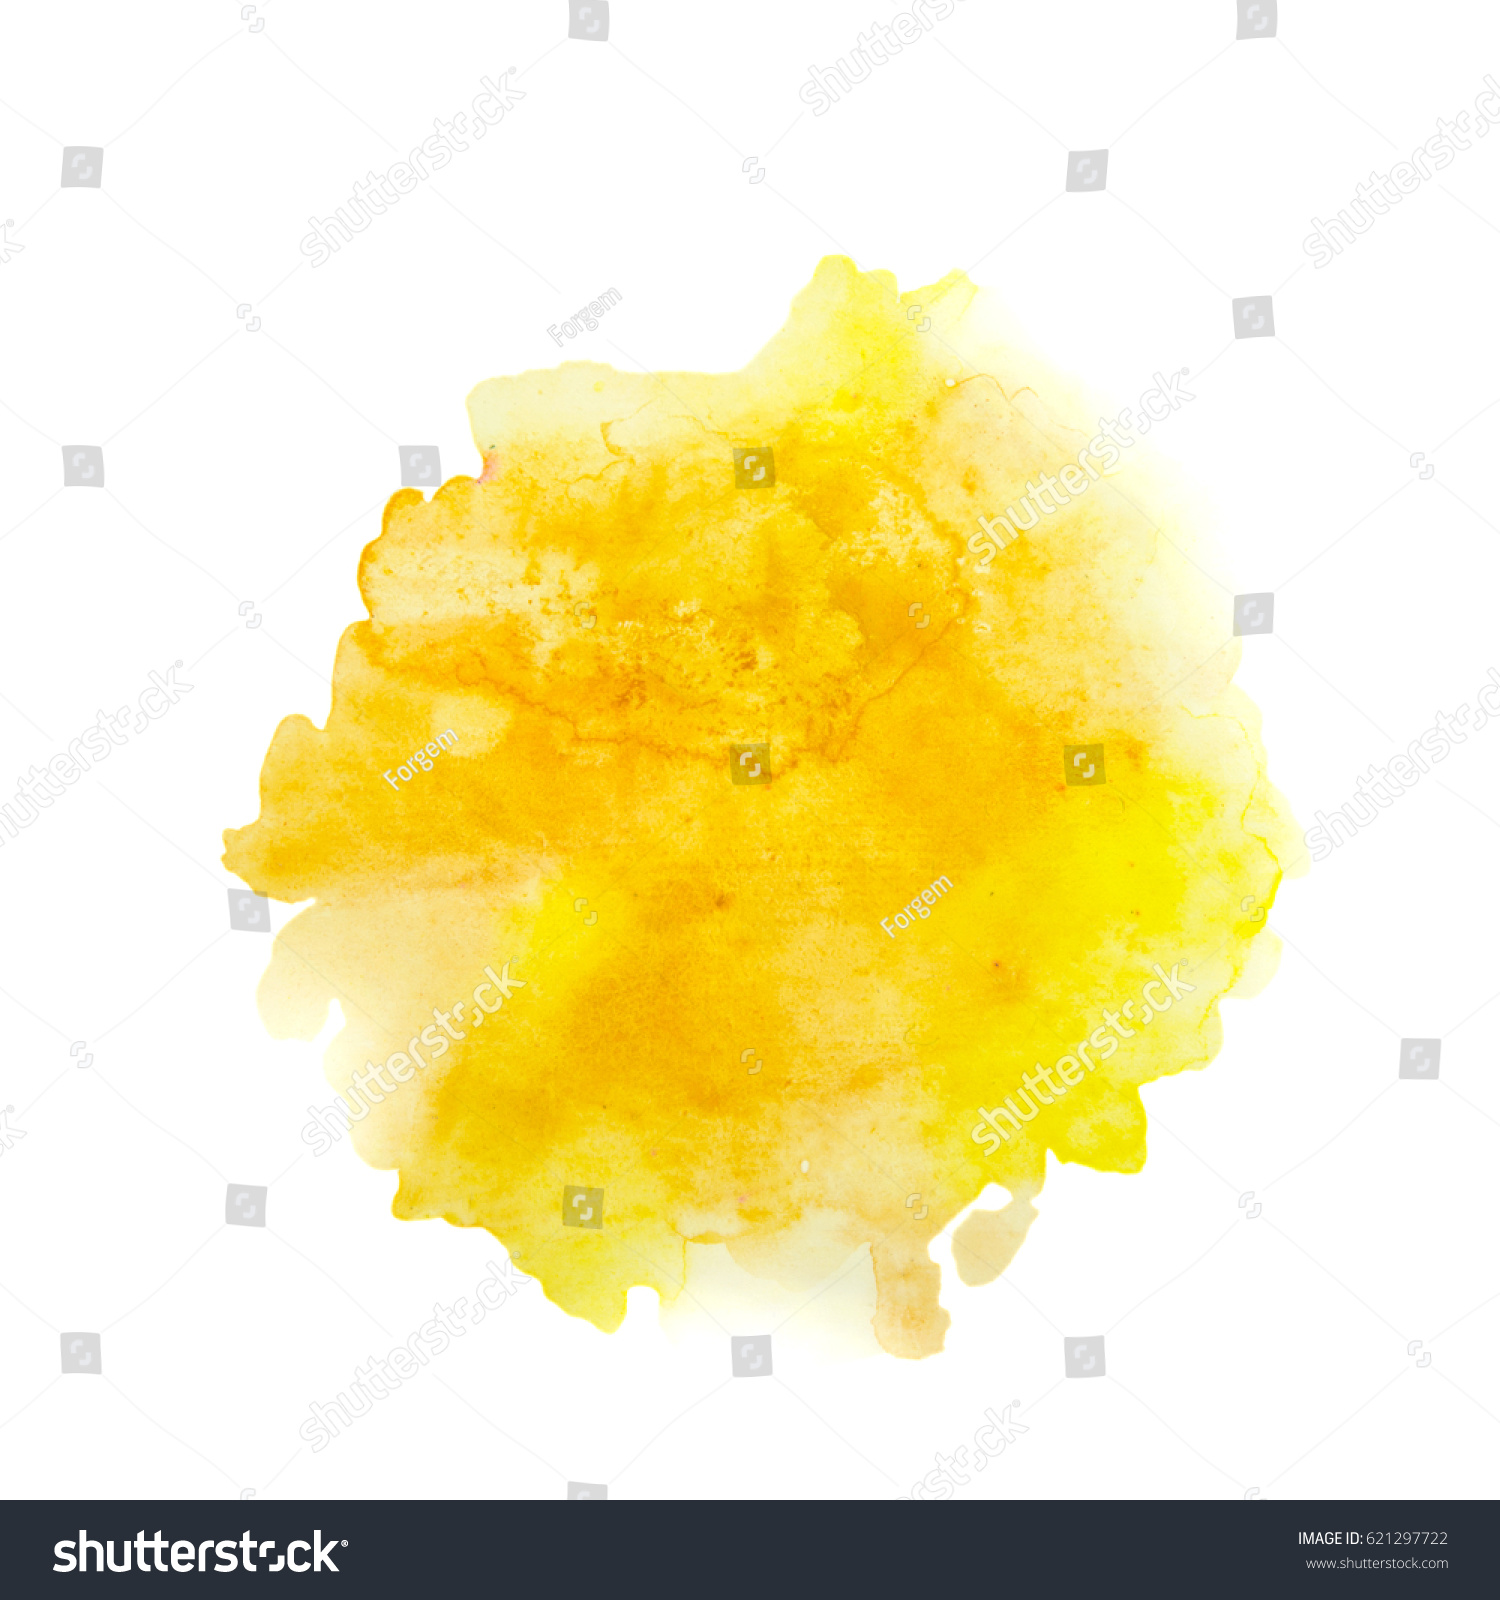 Color, yellow - orange splash watercolor hand painted isolated on white background, artistic decoration or background #621297722